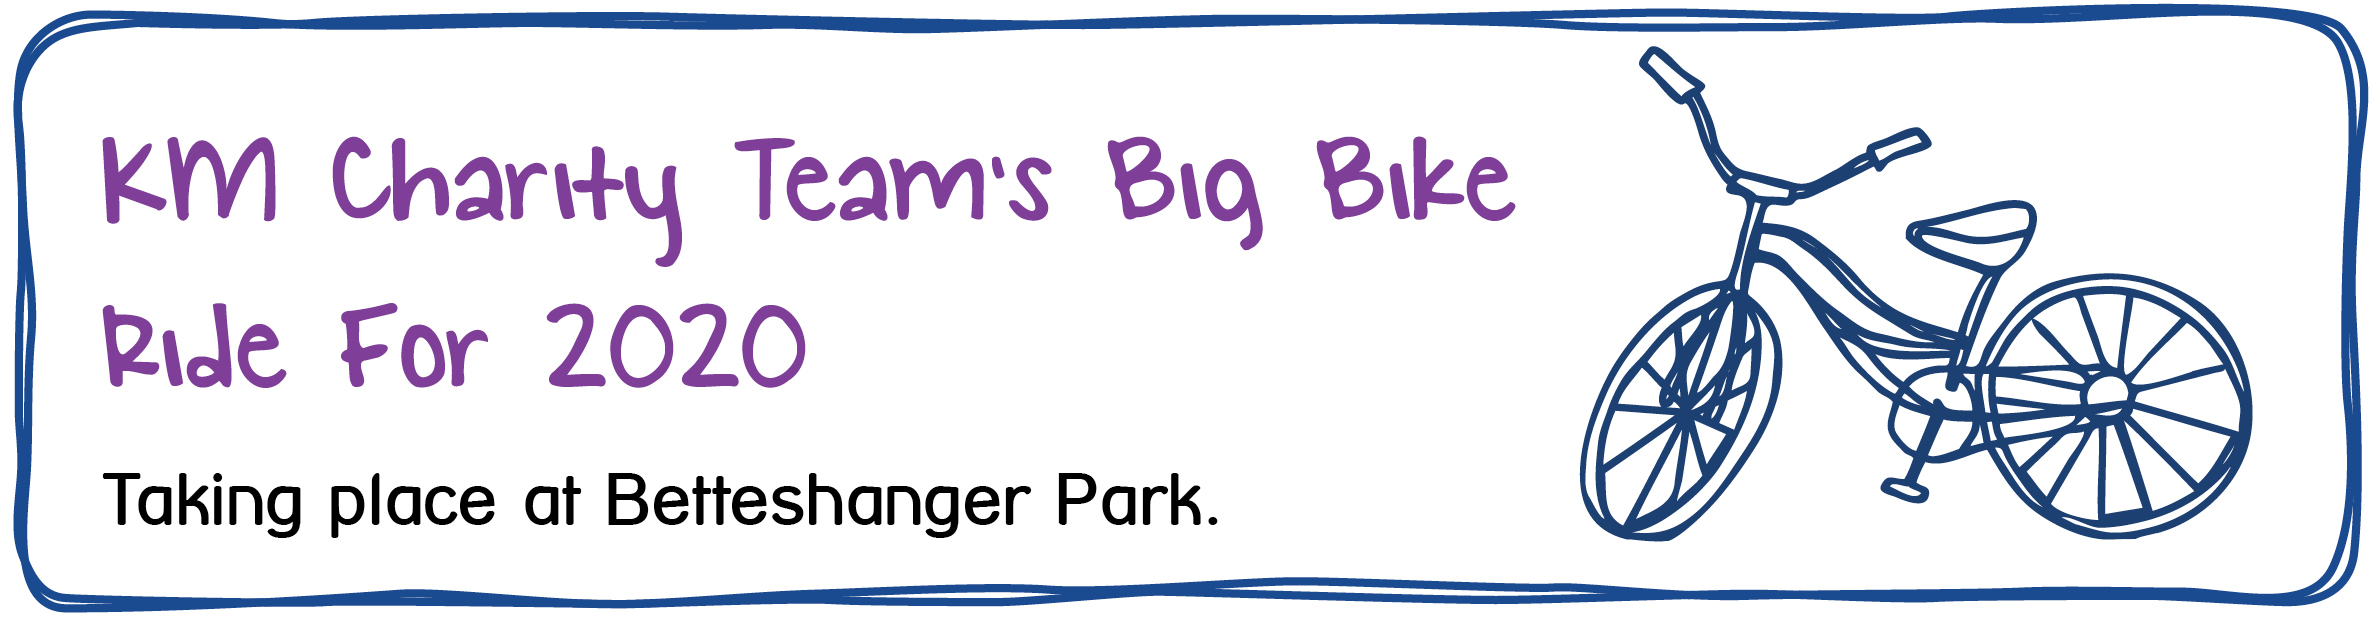 KM Charity Team's Big Bike Ride for 2020. Taking place at Betteshanger Park.